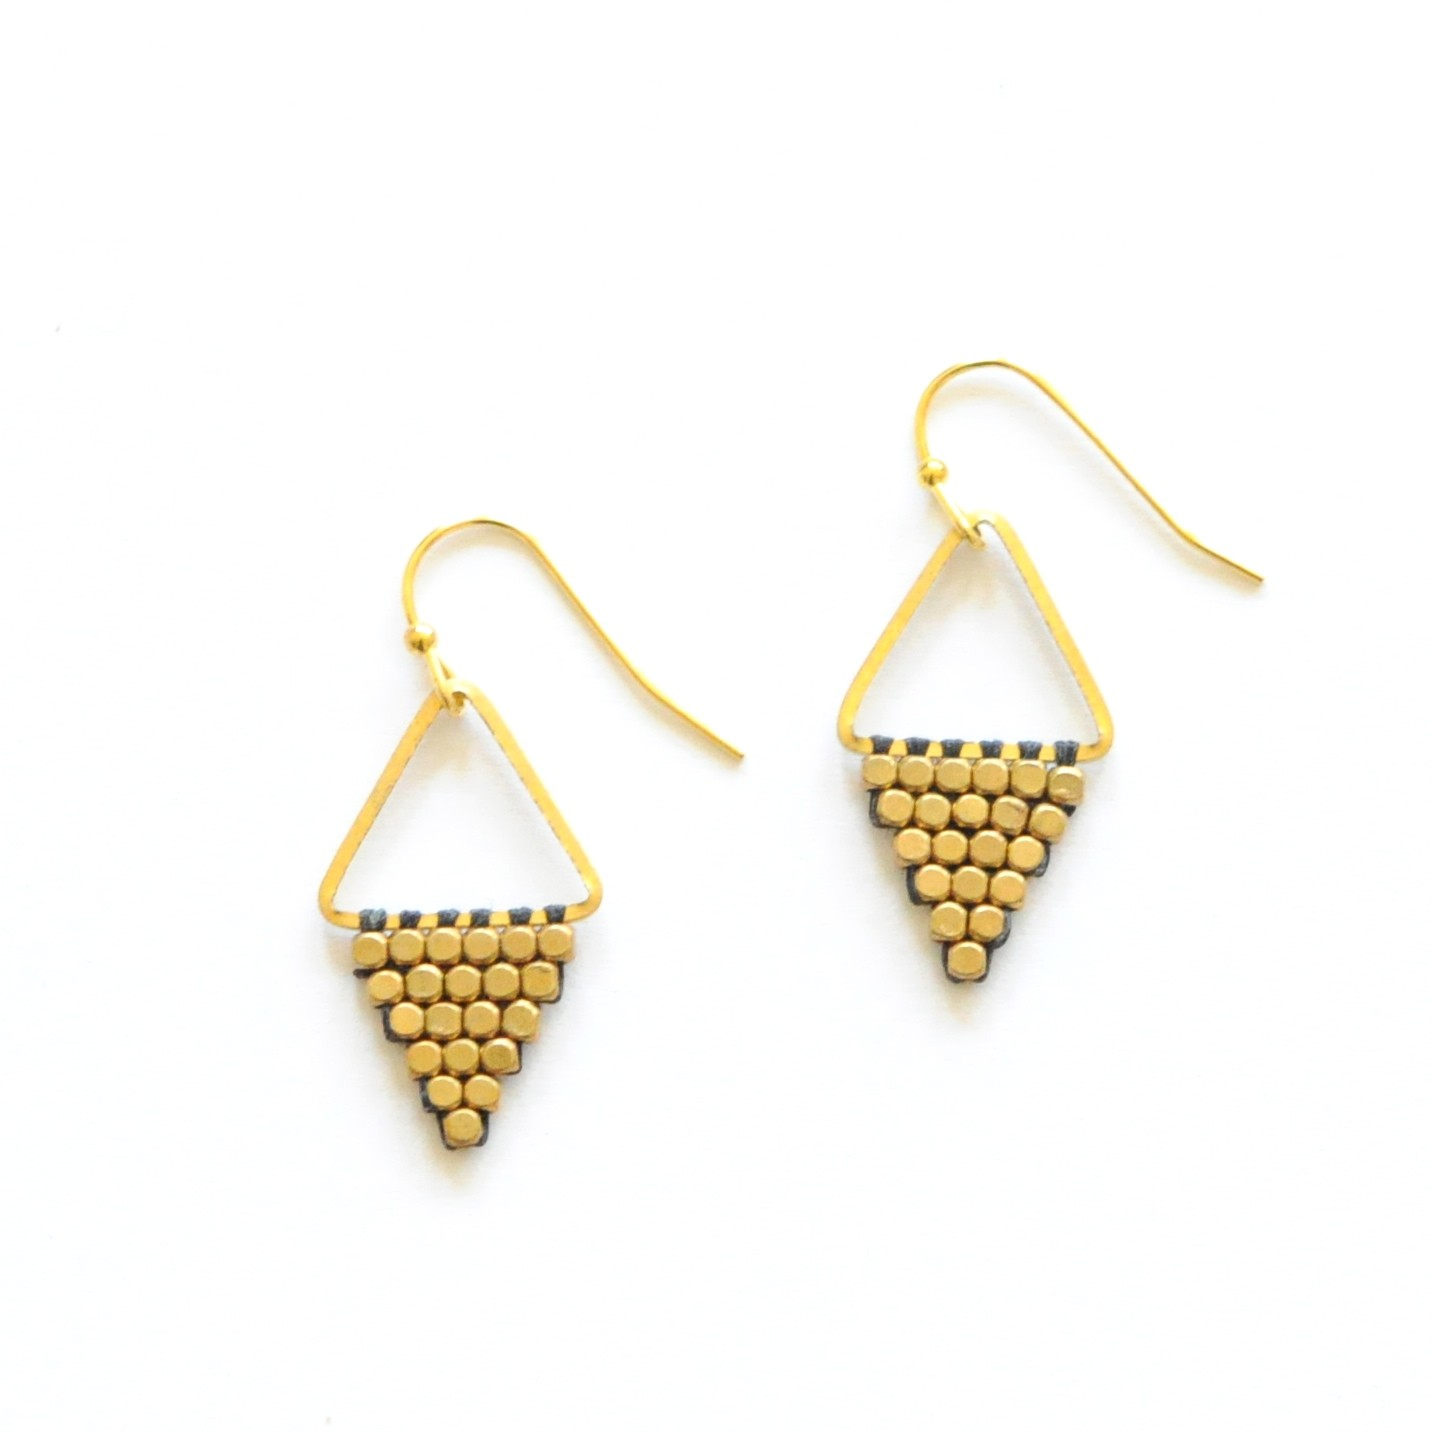 Diamond Didi Earrings by the Didi Jewelry Project  ,  TO THE MARKET , $20.00